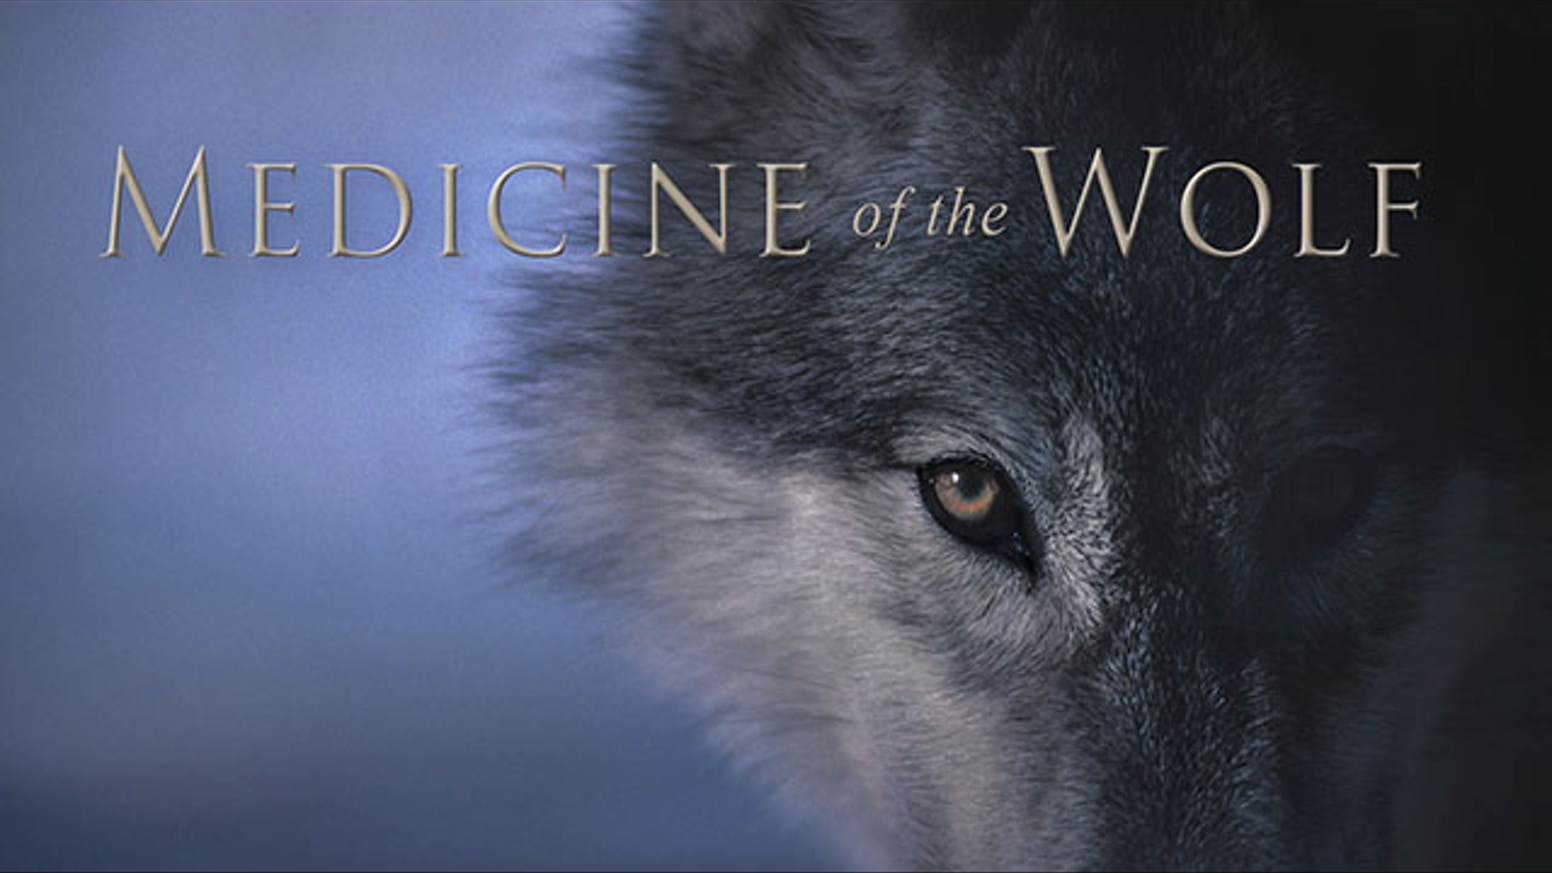 Medicine of the Wolf pursues the deep intrinsic value of brother wolf and our forgotten promise to him.